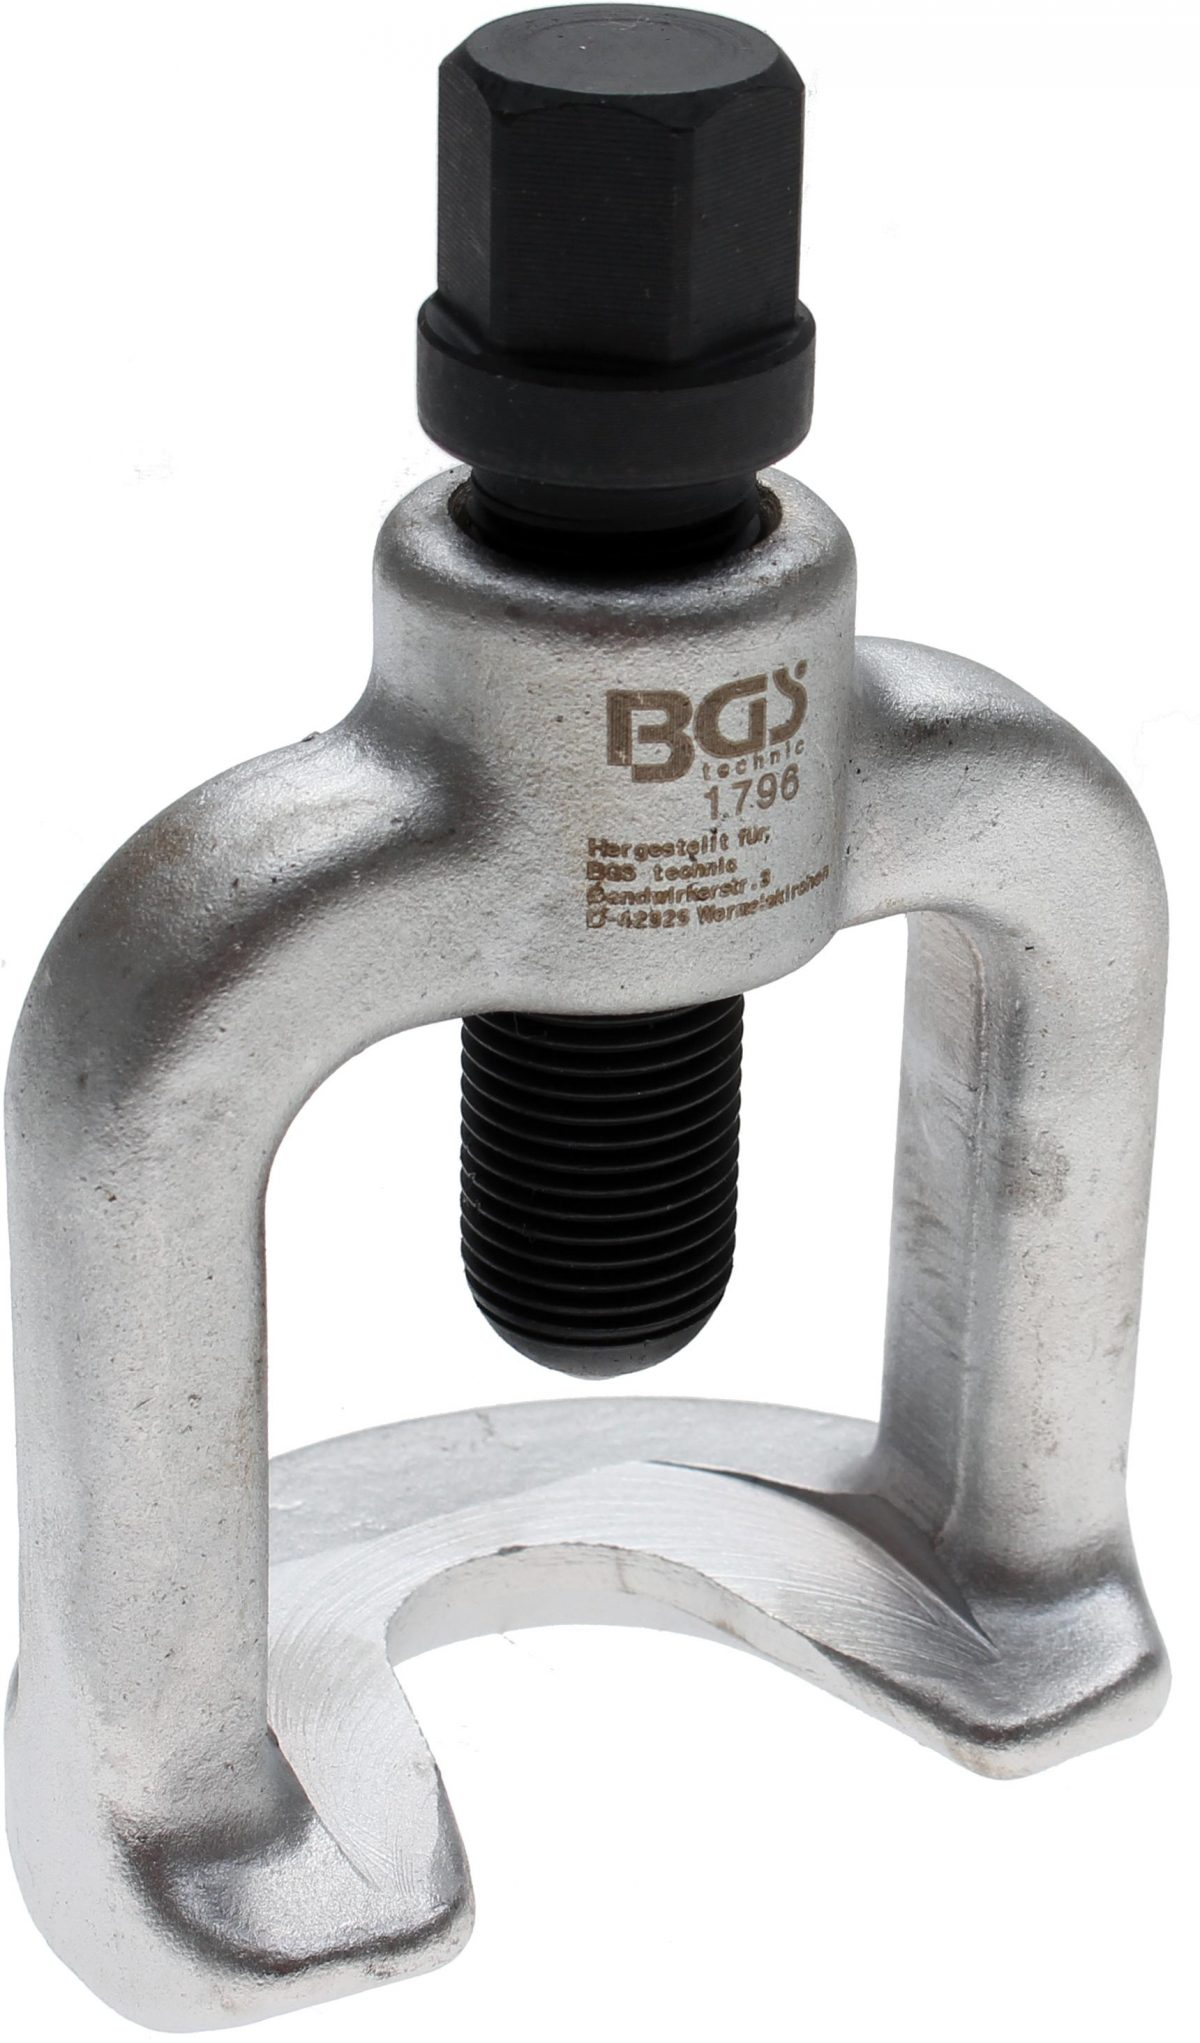 Ball Joint Separator | 23 mm (1796)